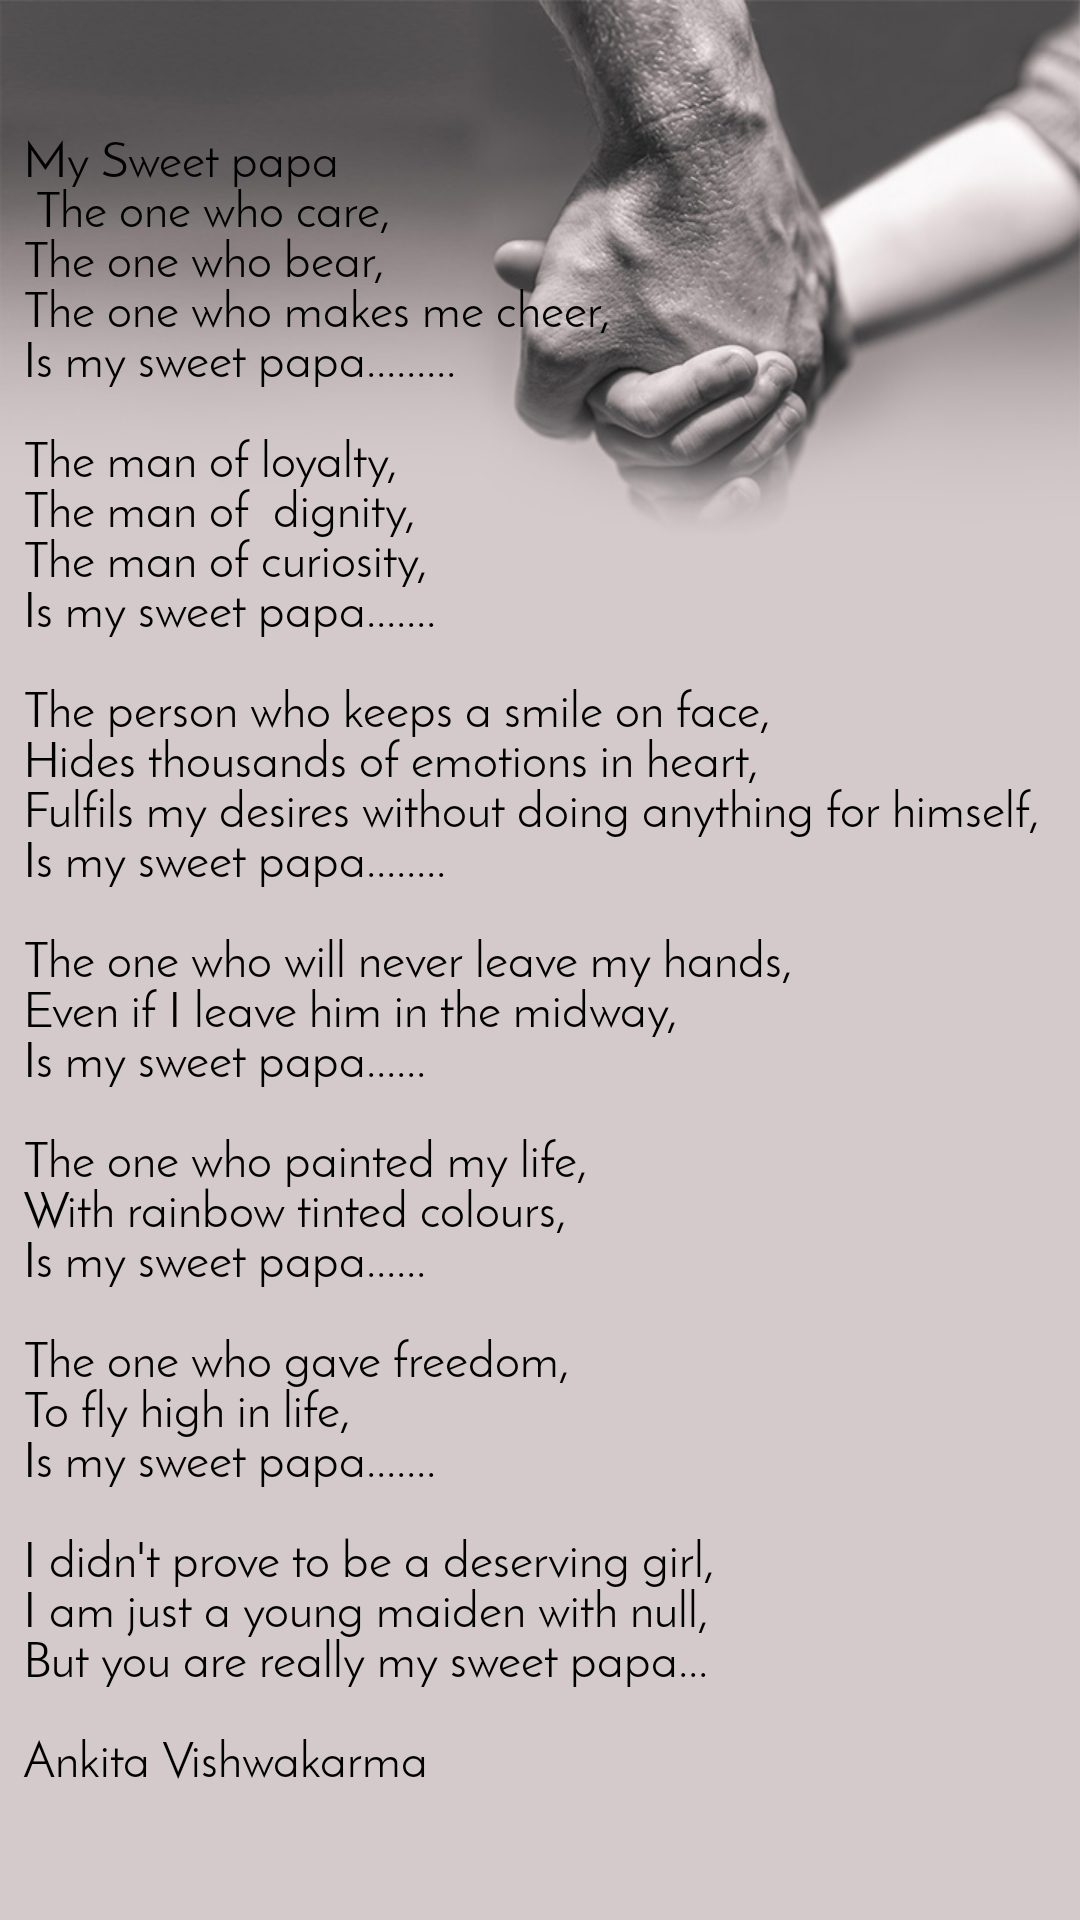 My Sweet papa  The one who care, The one who bear, The one who makes me cheer, Is my sweet papa.........  The man of loyalty, The man of  dignity, The man of curiosity, Is my sweet papa.......  The person who keeps a smile on face, Hides thousands of emotions in heart, Fulfils my desires without doing anything for himself, Is my sweet papa........  The one who will never leave my hands, Even if I leave him in the midway, Is my sweet papa......  The one who painted my life, With rainbow tinted colours, Is my sweet papa......  The one who gave freedom, To fly high in life, Is my sweet papa.......  I didn't prove to be a deserving girl, I am just a young maiden with null,  But you are really my sweet papa...  Ankita Vishwakarma